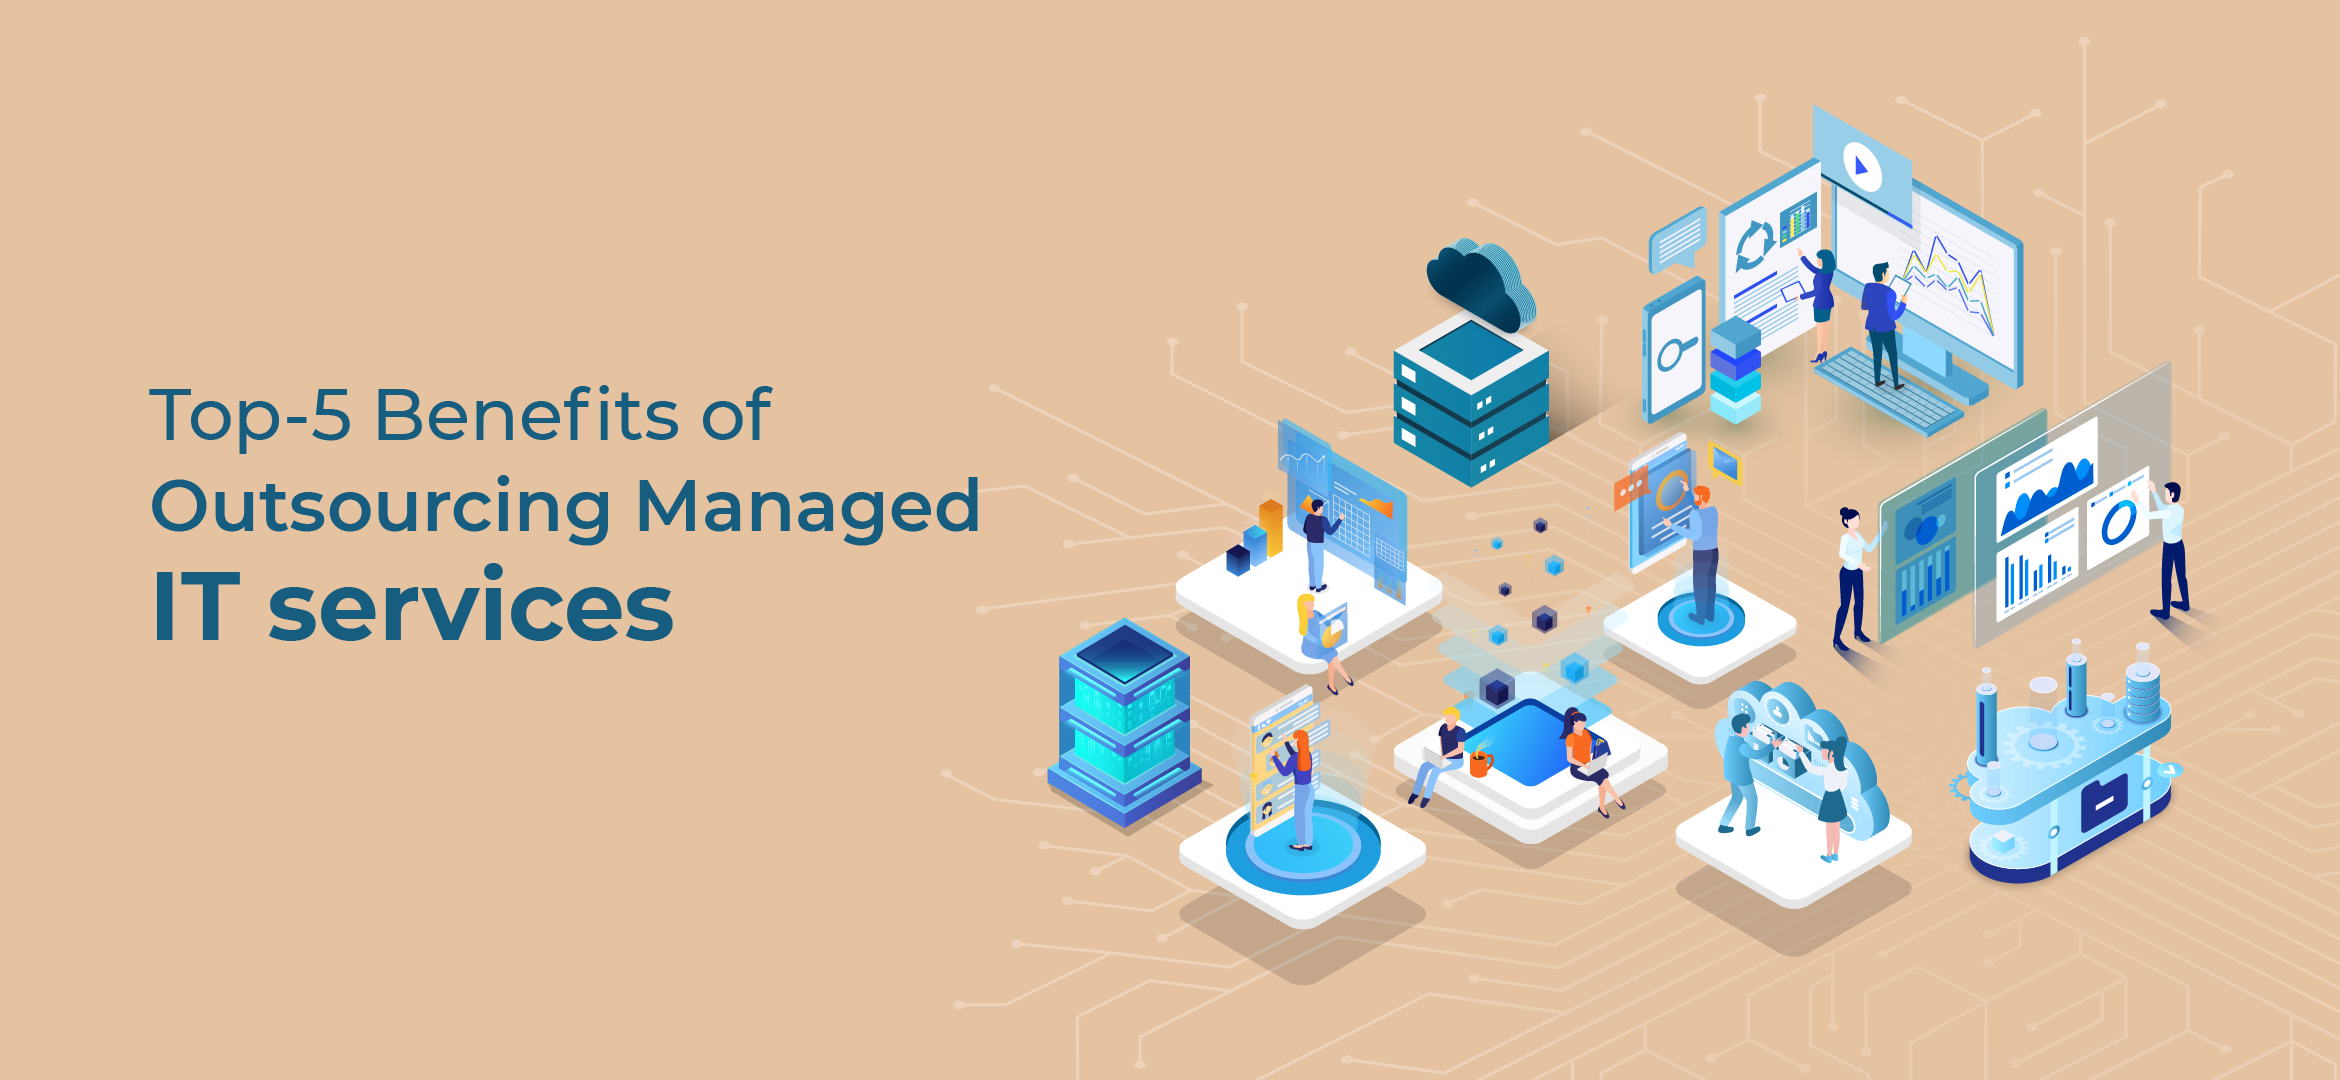 Managed IT service and IT infrastructure